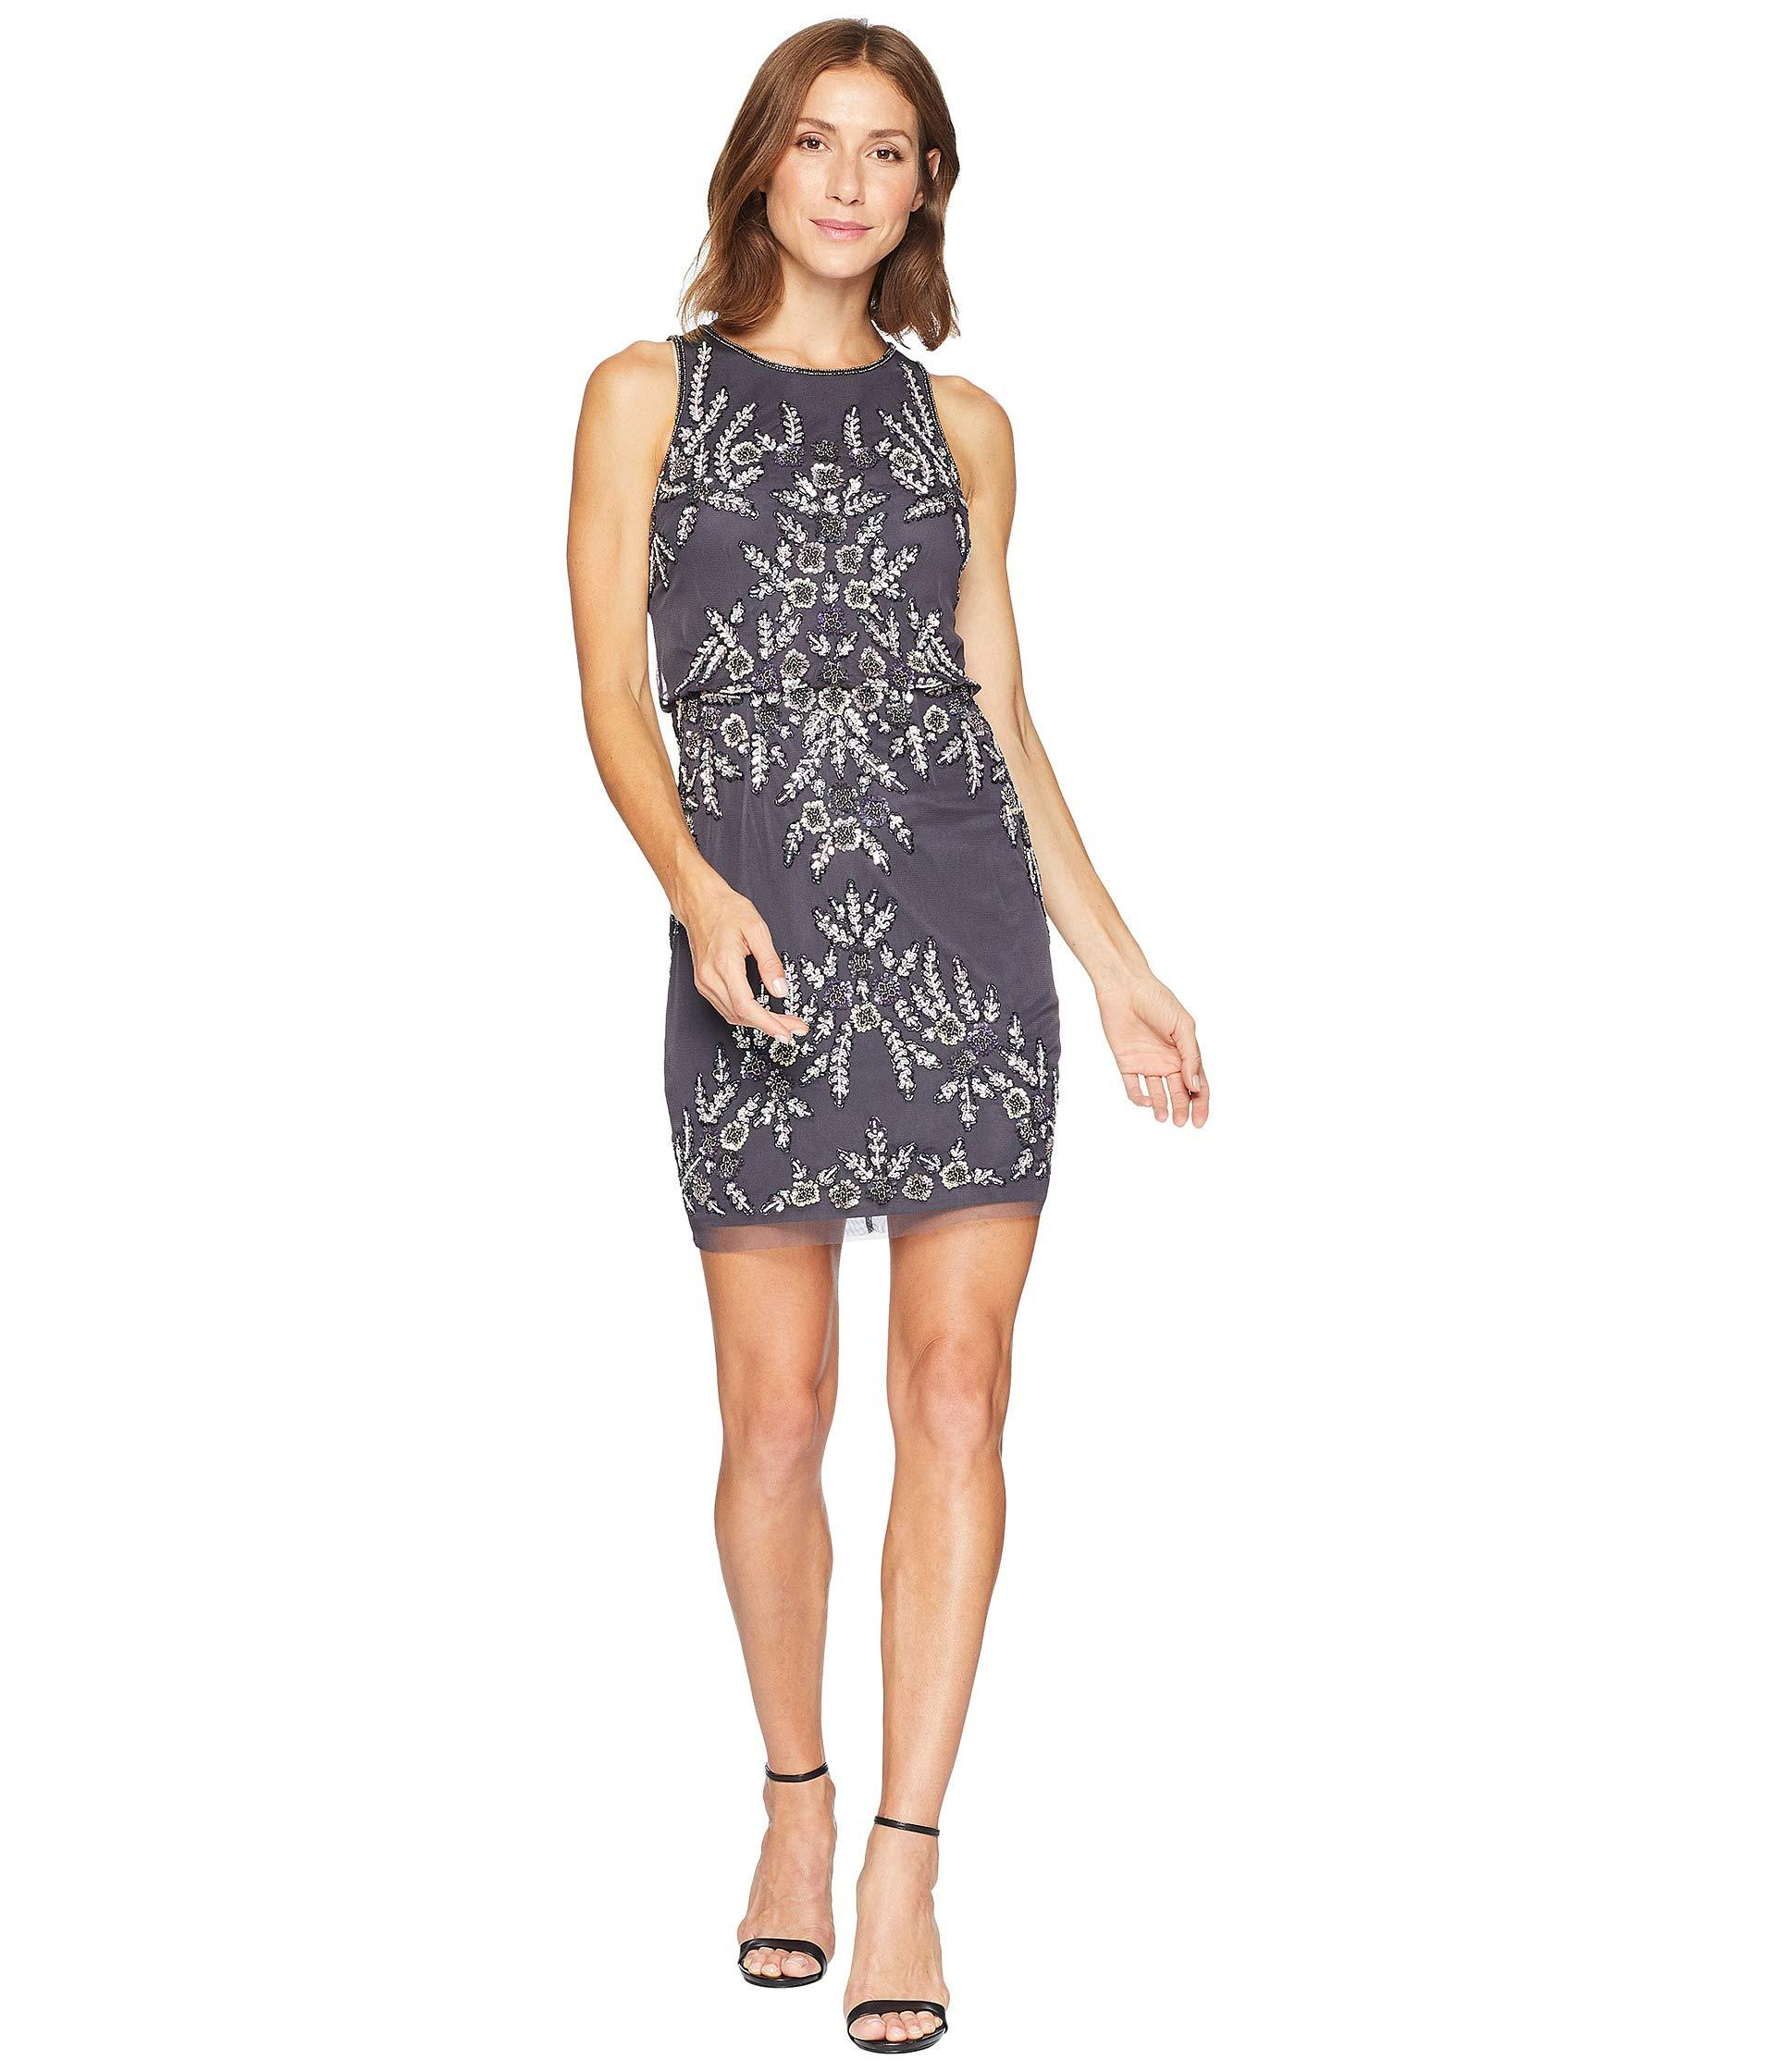 30492cb824a3 Adrianna Papell Beaded Blouson Halter Cocktail Dress in Blue - Lyst